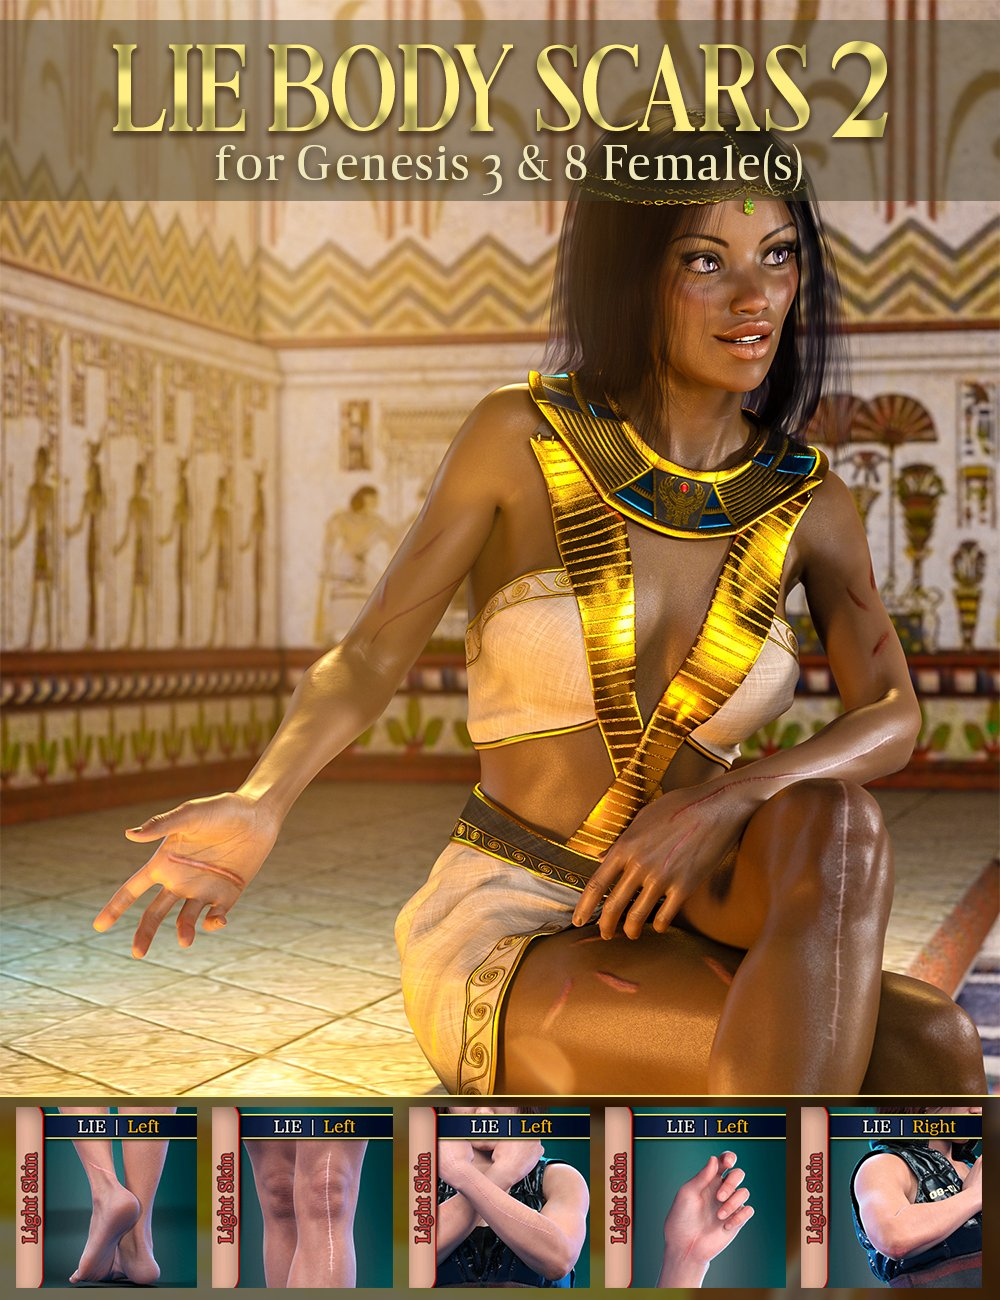 LIE Body Scars 2 for Genesis 3 and 8 Females by: FenixPhoenixEsid, 3D Models by Daz 3D